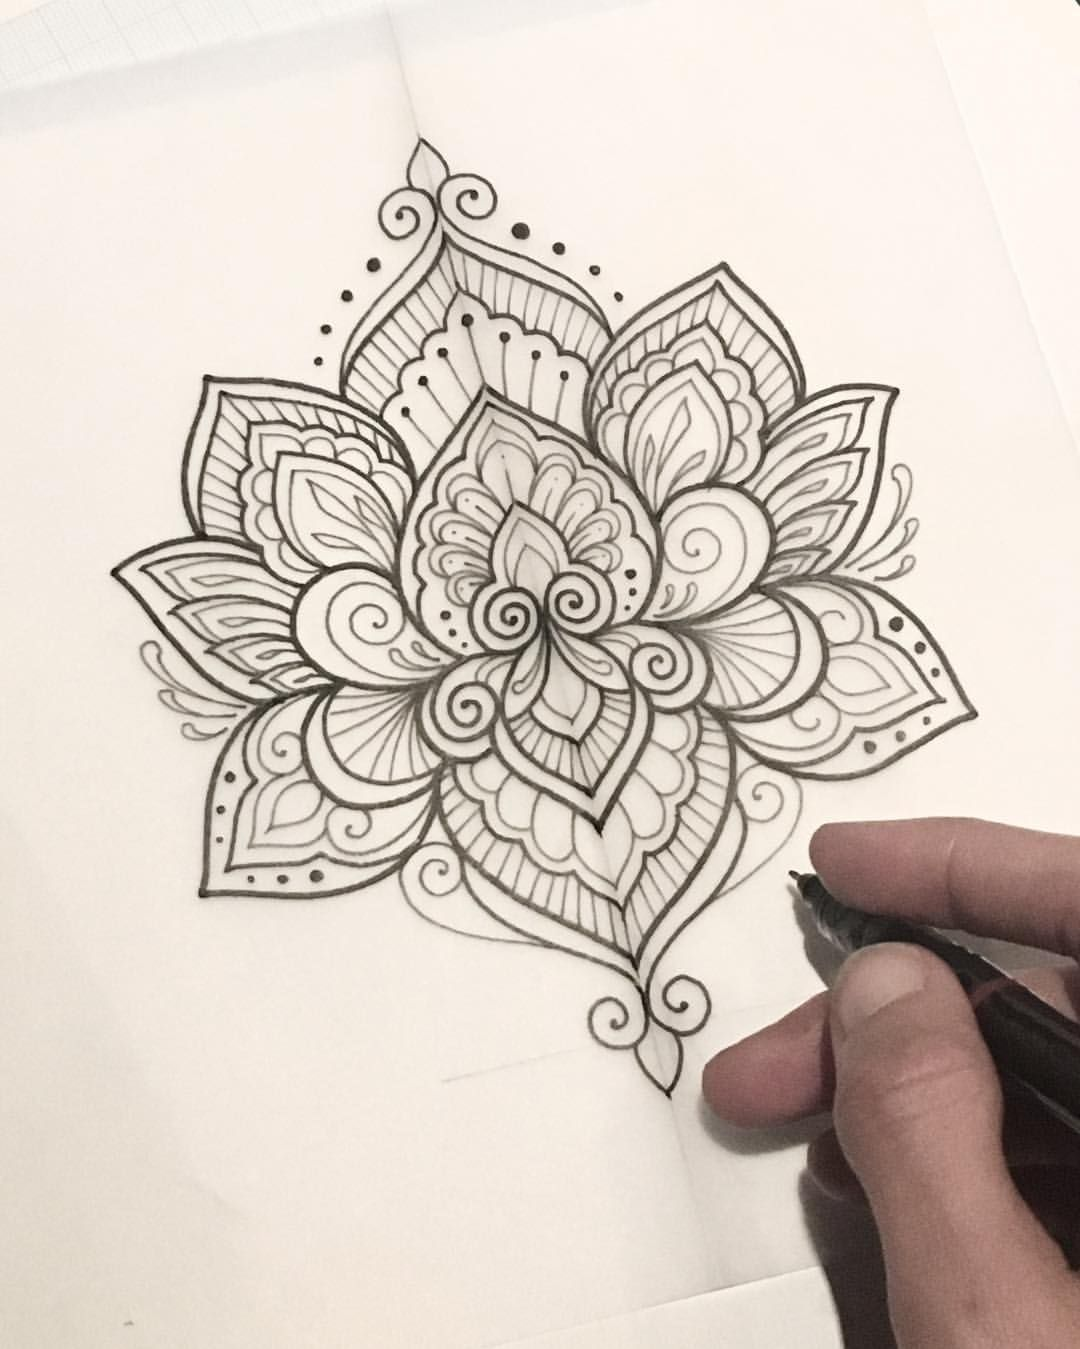 The Center Could Be The Celtic Motherhood Beautytatoos Lotus